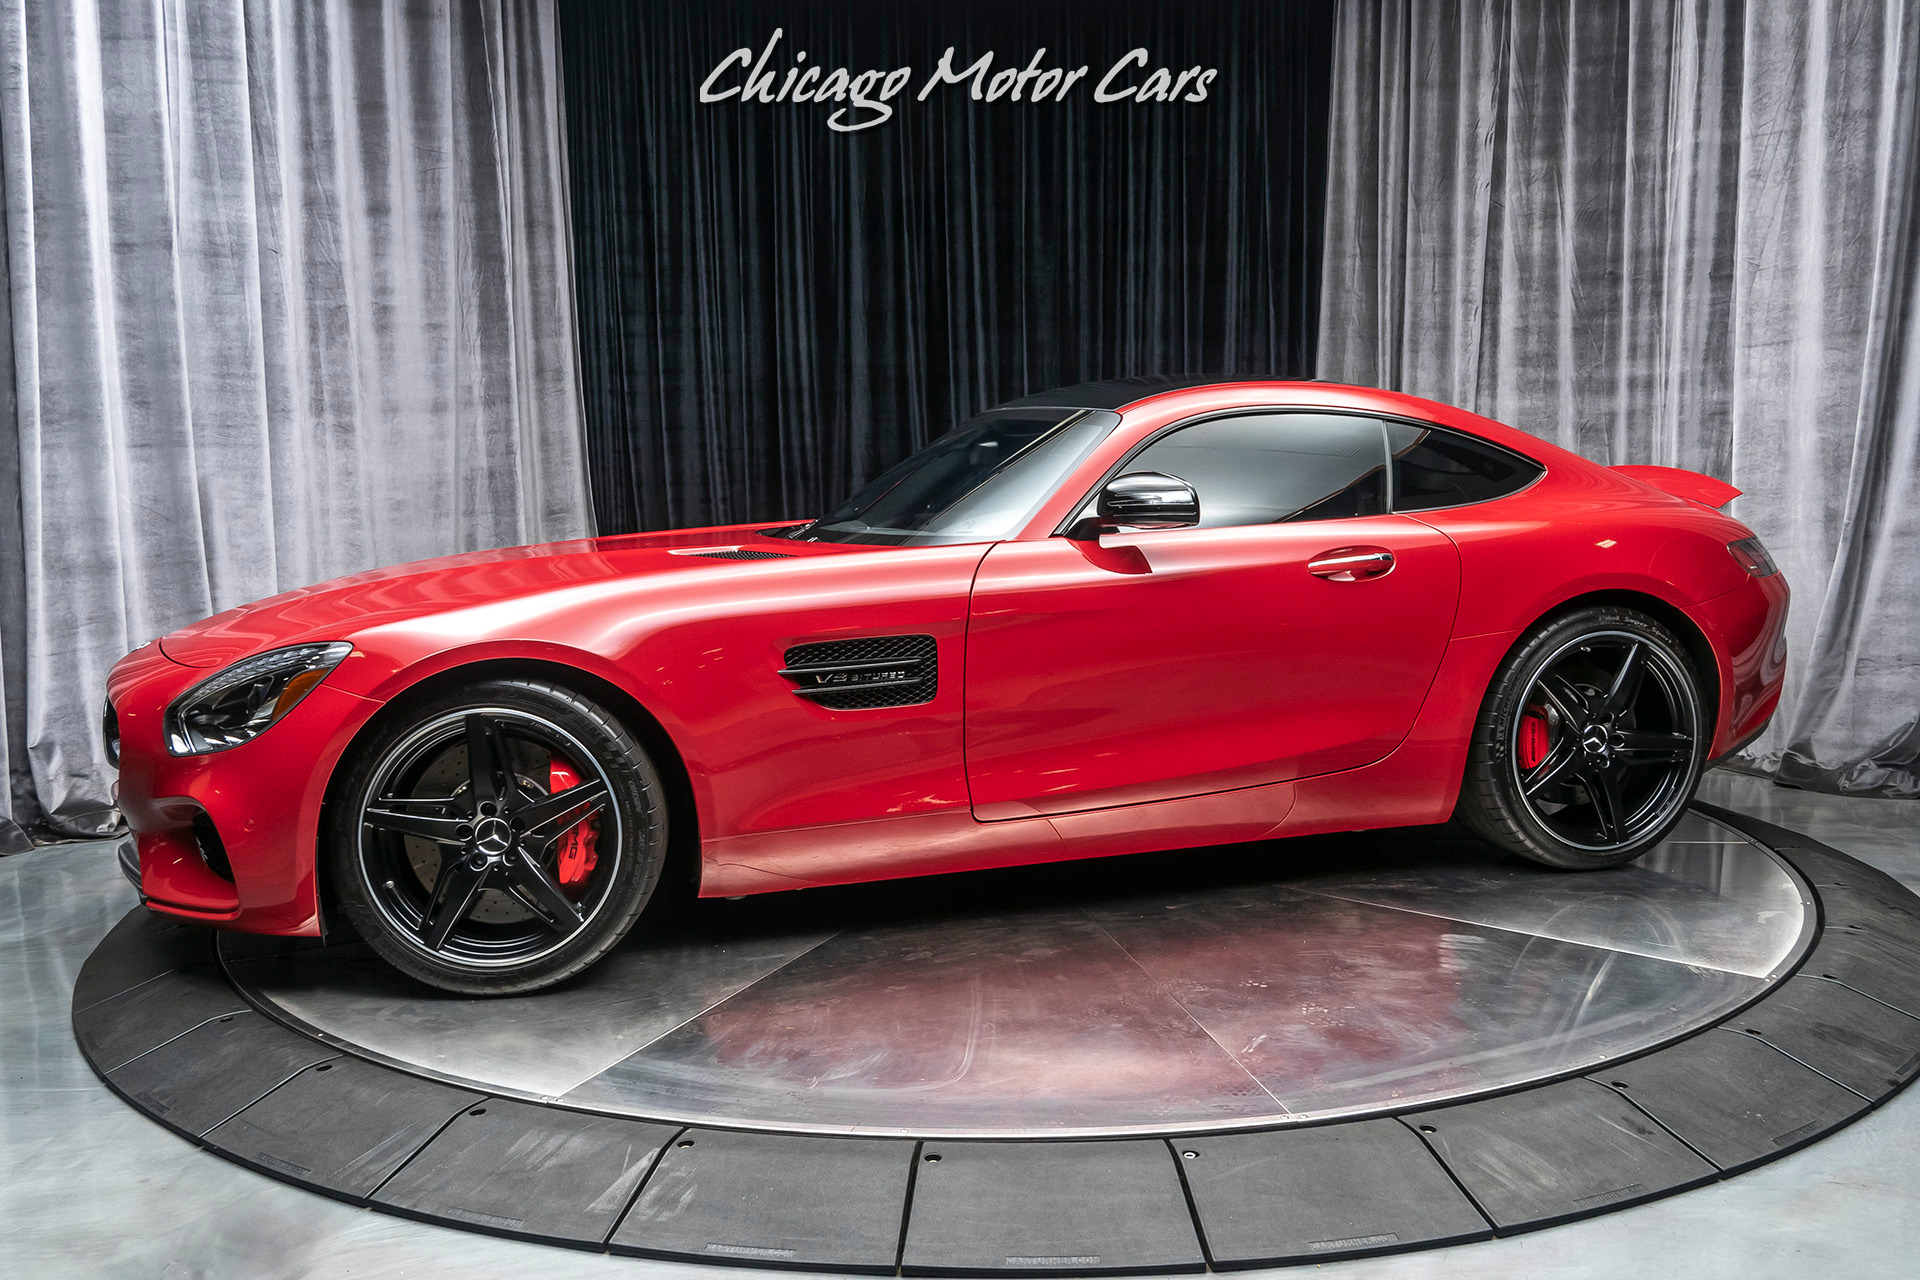 Used-2016-Mercedes-Benz-AMG-GTS-Coupe-145K-MSRP-Only-6K-Miles-EXCLUSIVE-INTERIOR-PKG